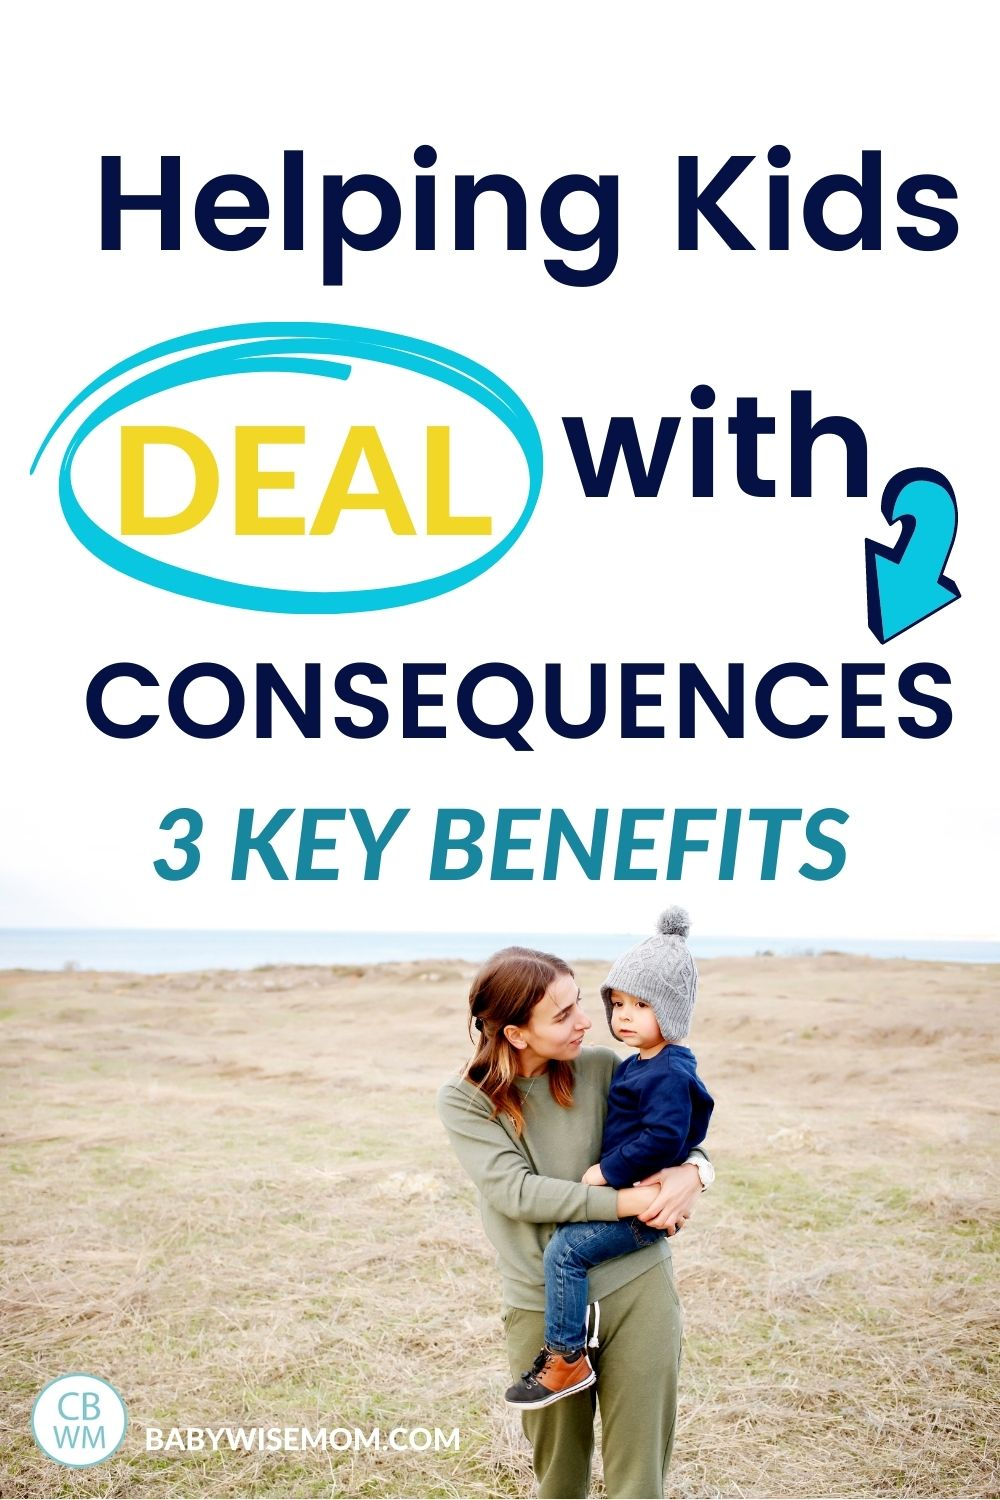 kids deal with consequences pinnable image